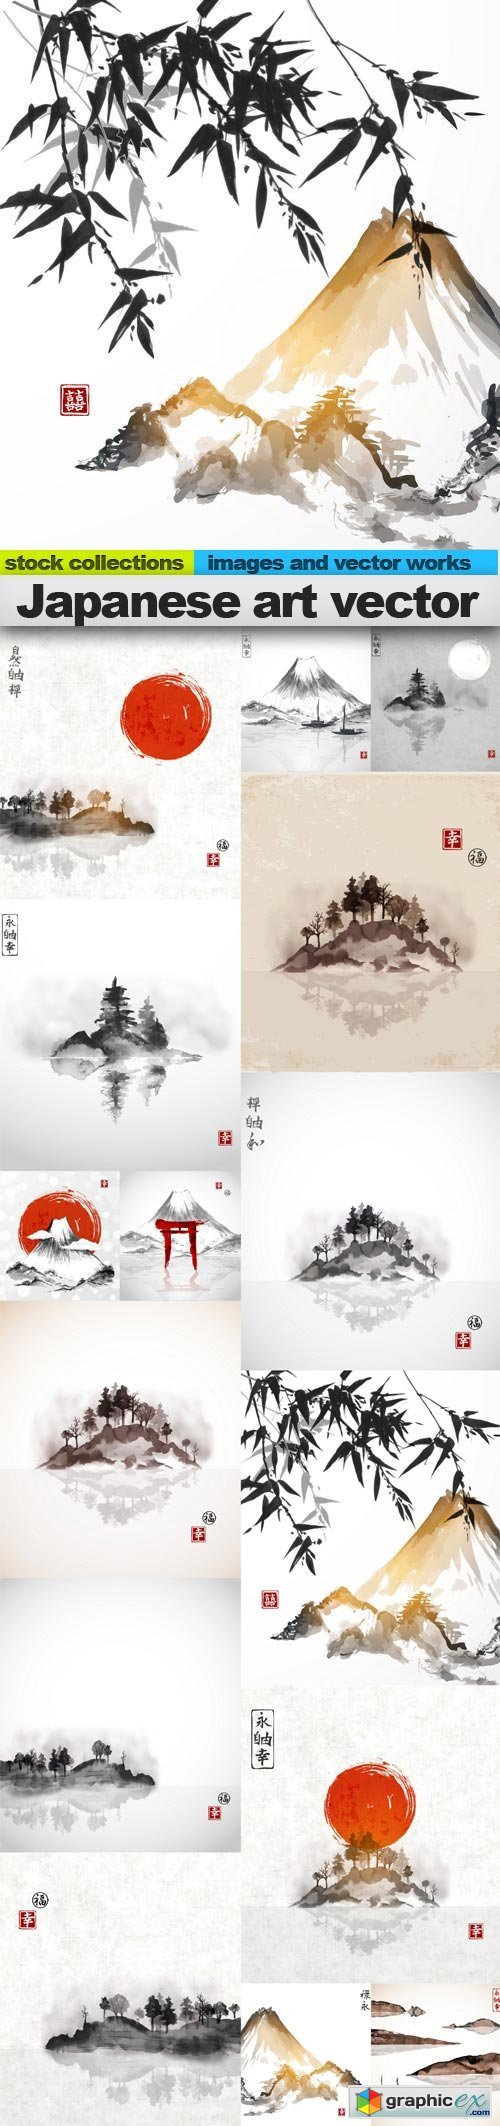 Japanese art vector 2, 15 x EPS